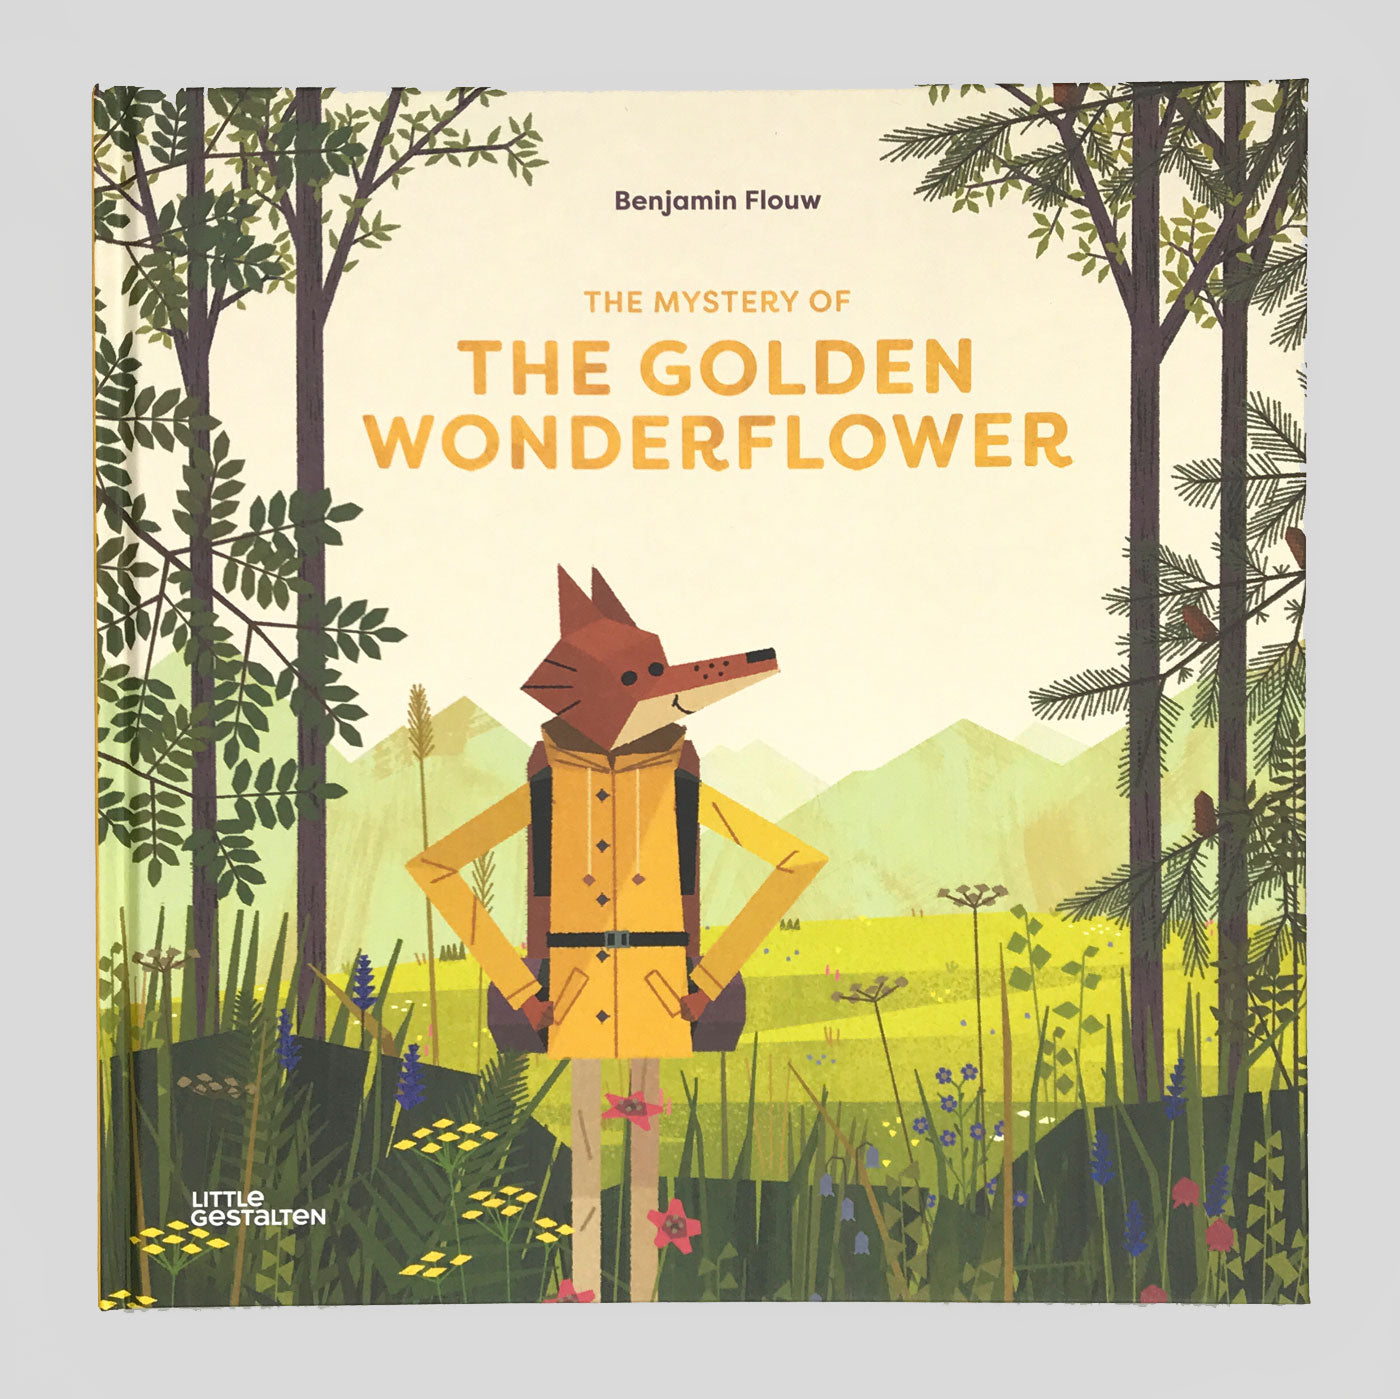 The Mystery of the Golden Wonderflower - Benjamin Flouw